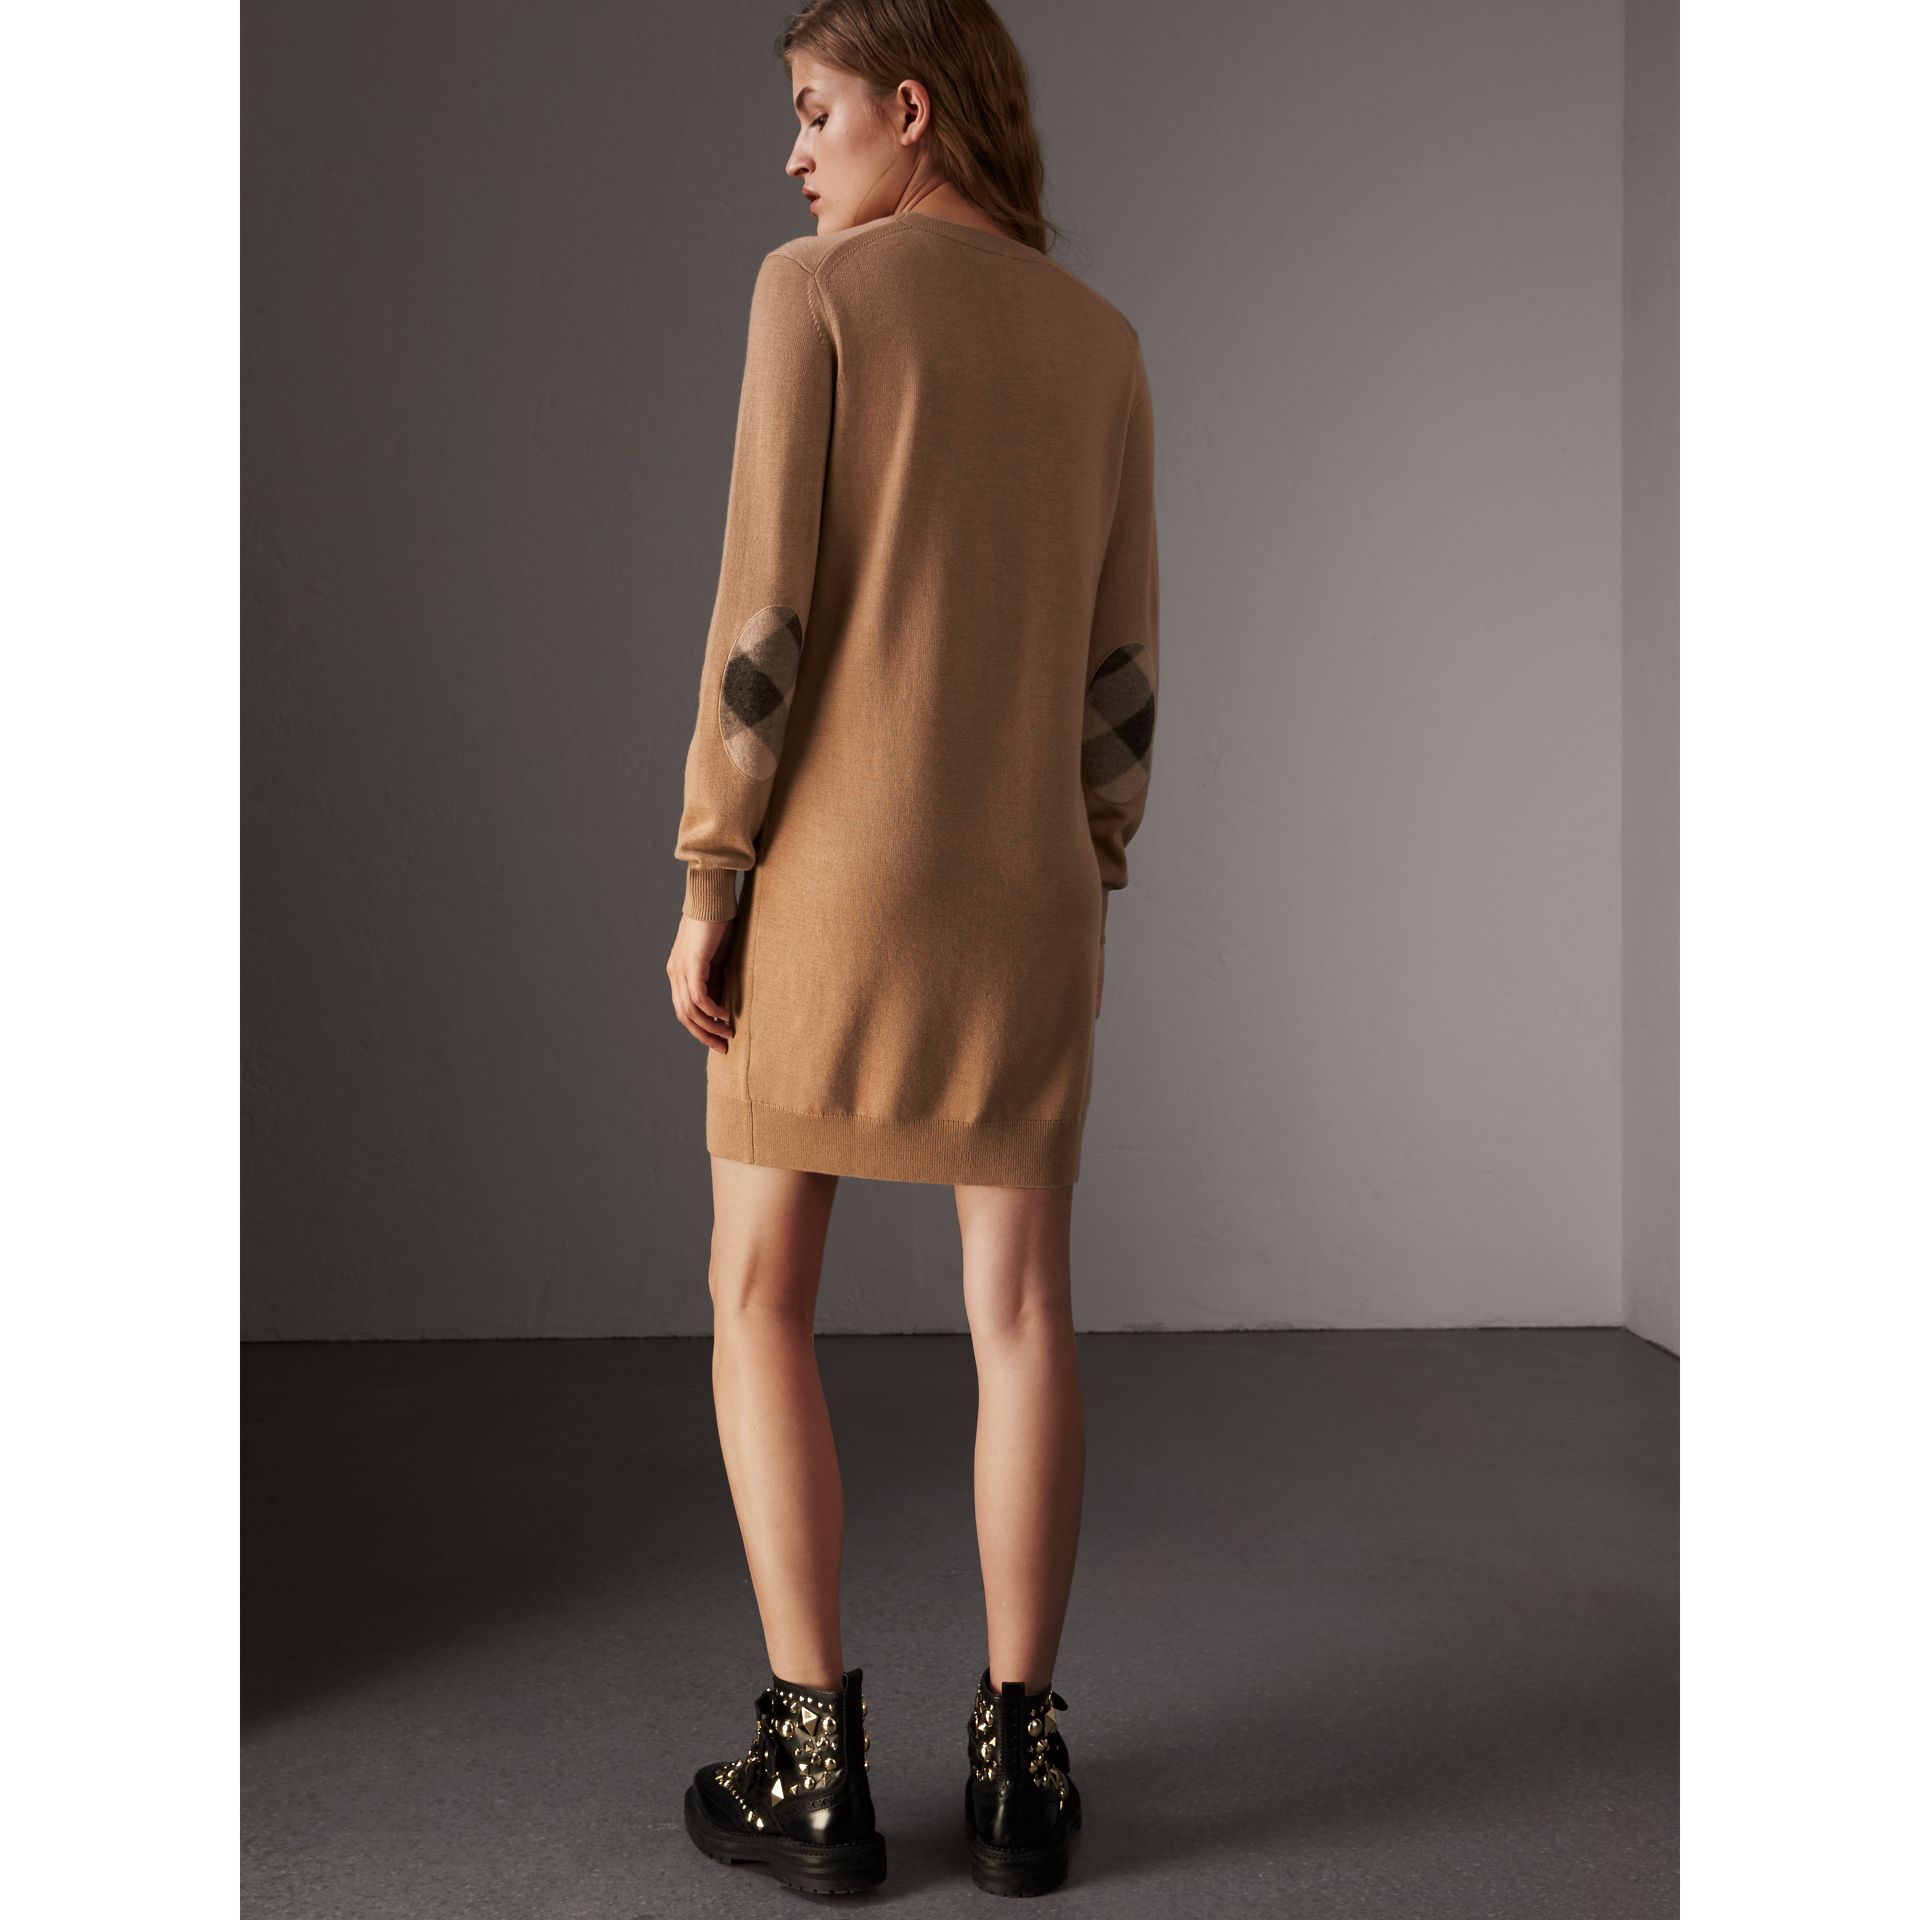 Check Elbow Detail Merino Wool Sweater Dress in Camel - Women | Burberry United States - gallery image 3